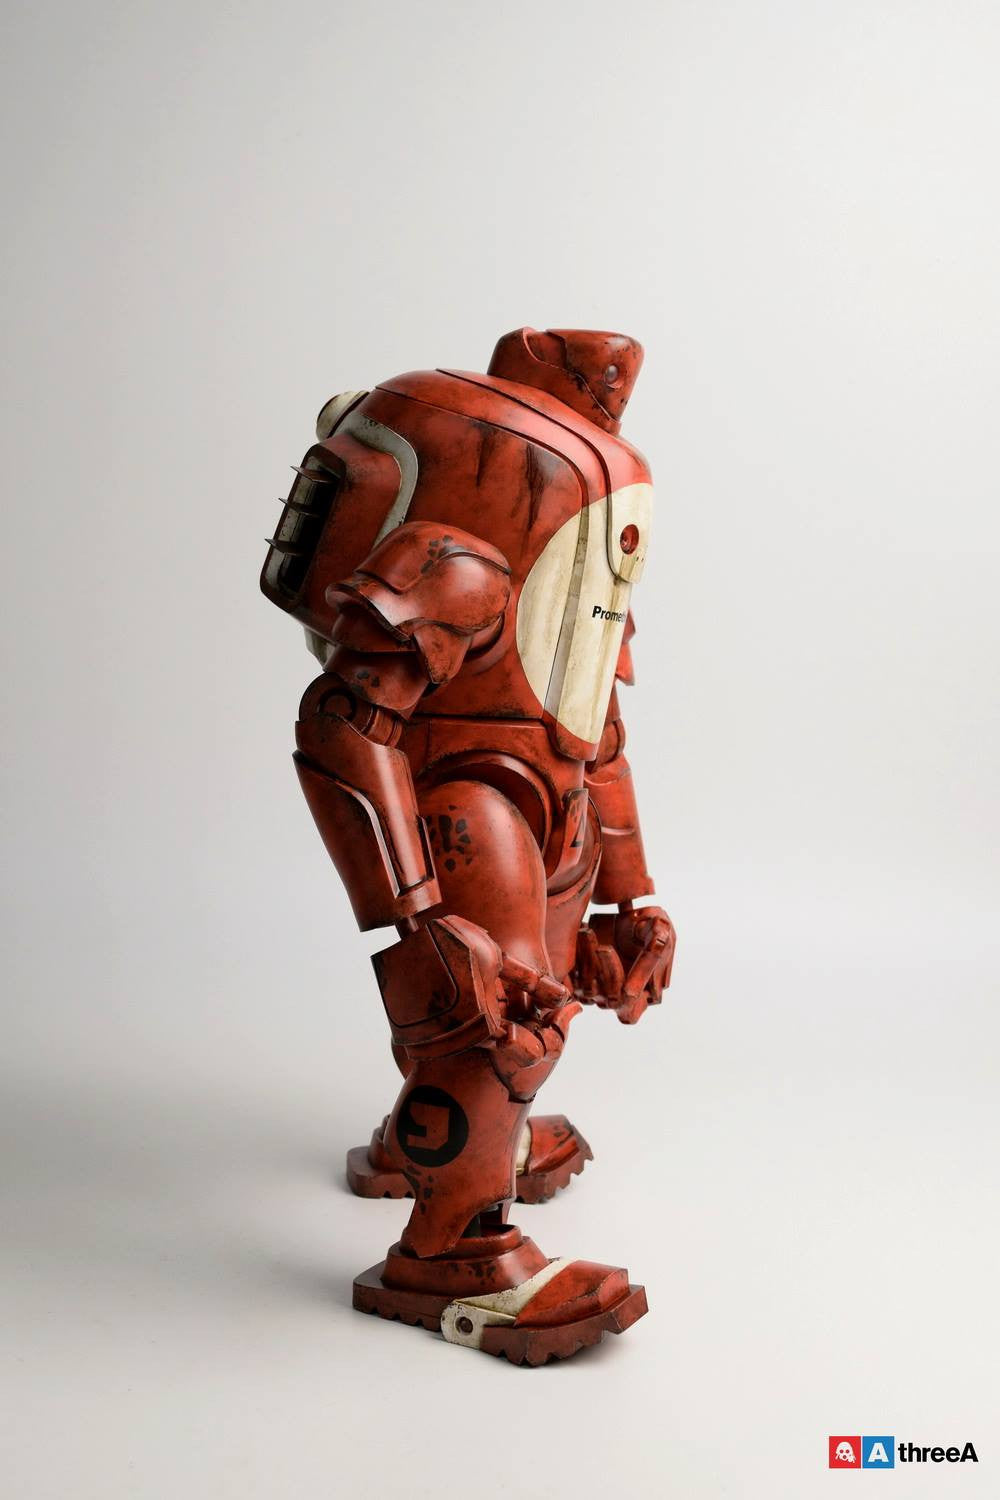 ThreeA - Evenfall - 1/6 T.O.T.E.M Thug Pugillo - Hazard Op (Red) - Marvelous Toys - 7